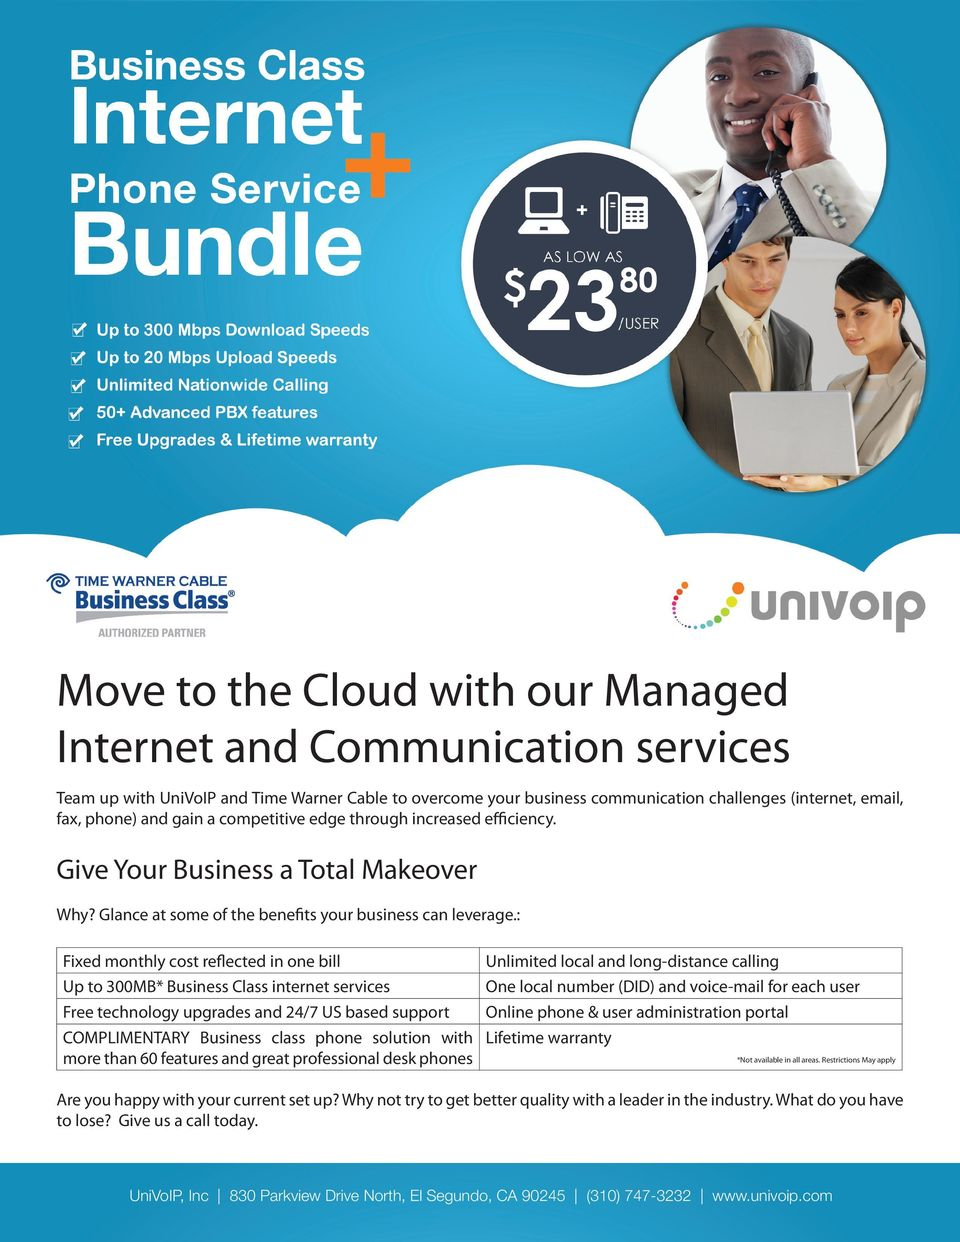 : Fixed monthly cost reflected in one bill Up to 300MB* Business Class internet services Free technology upgrades and 24/7 US based support COMPLIMENTARY Business class phone solution with Lifetime